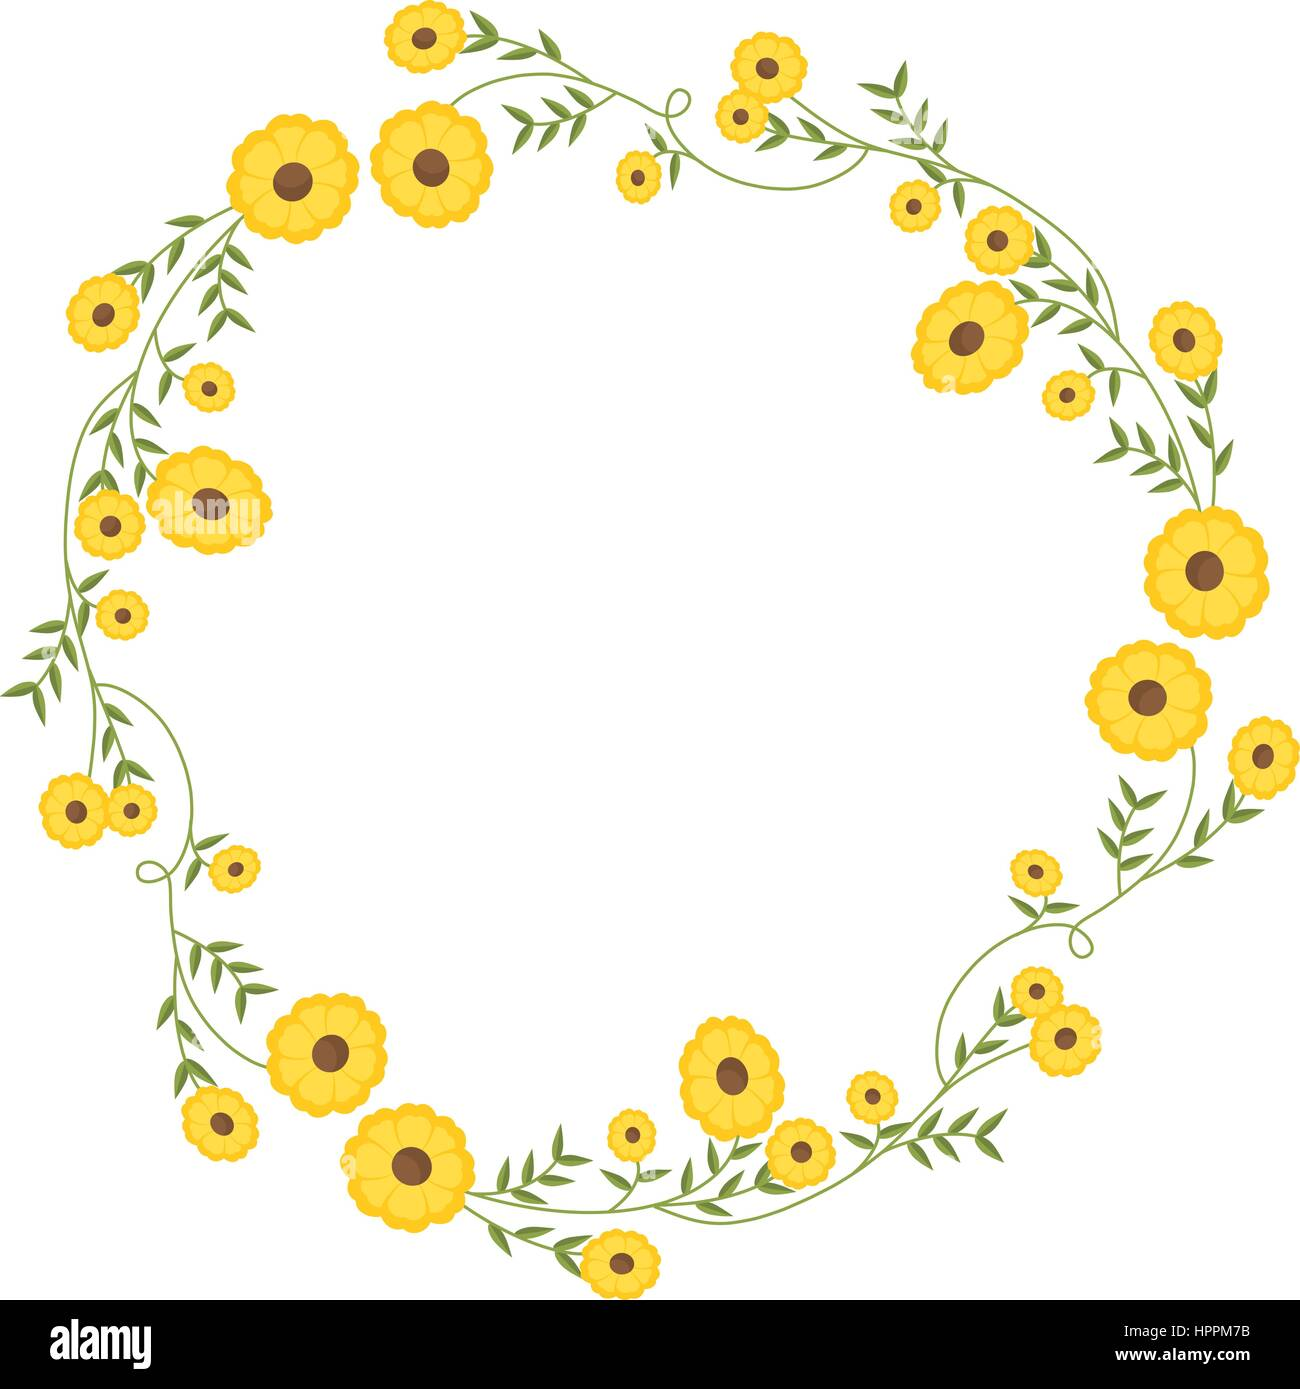 Floral Circular Wreath Decoration With Yellow Flowers Stock